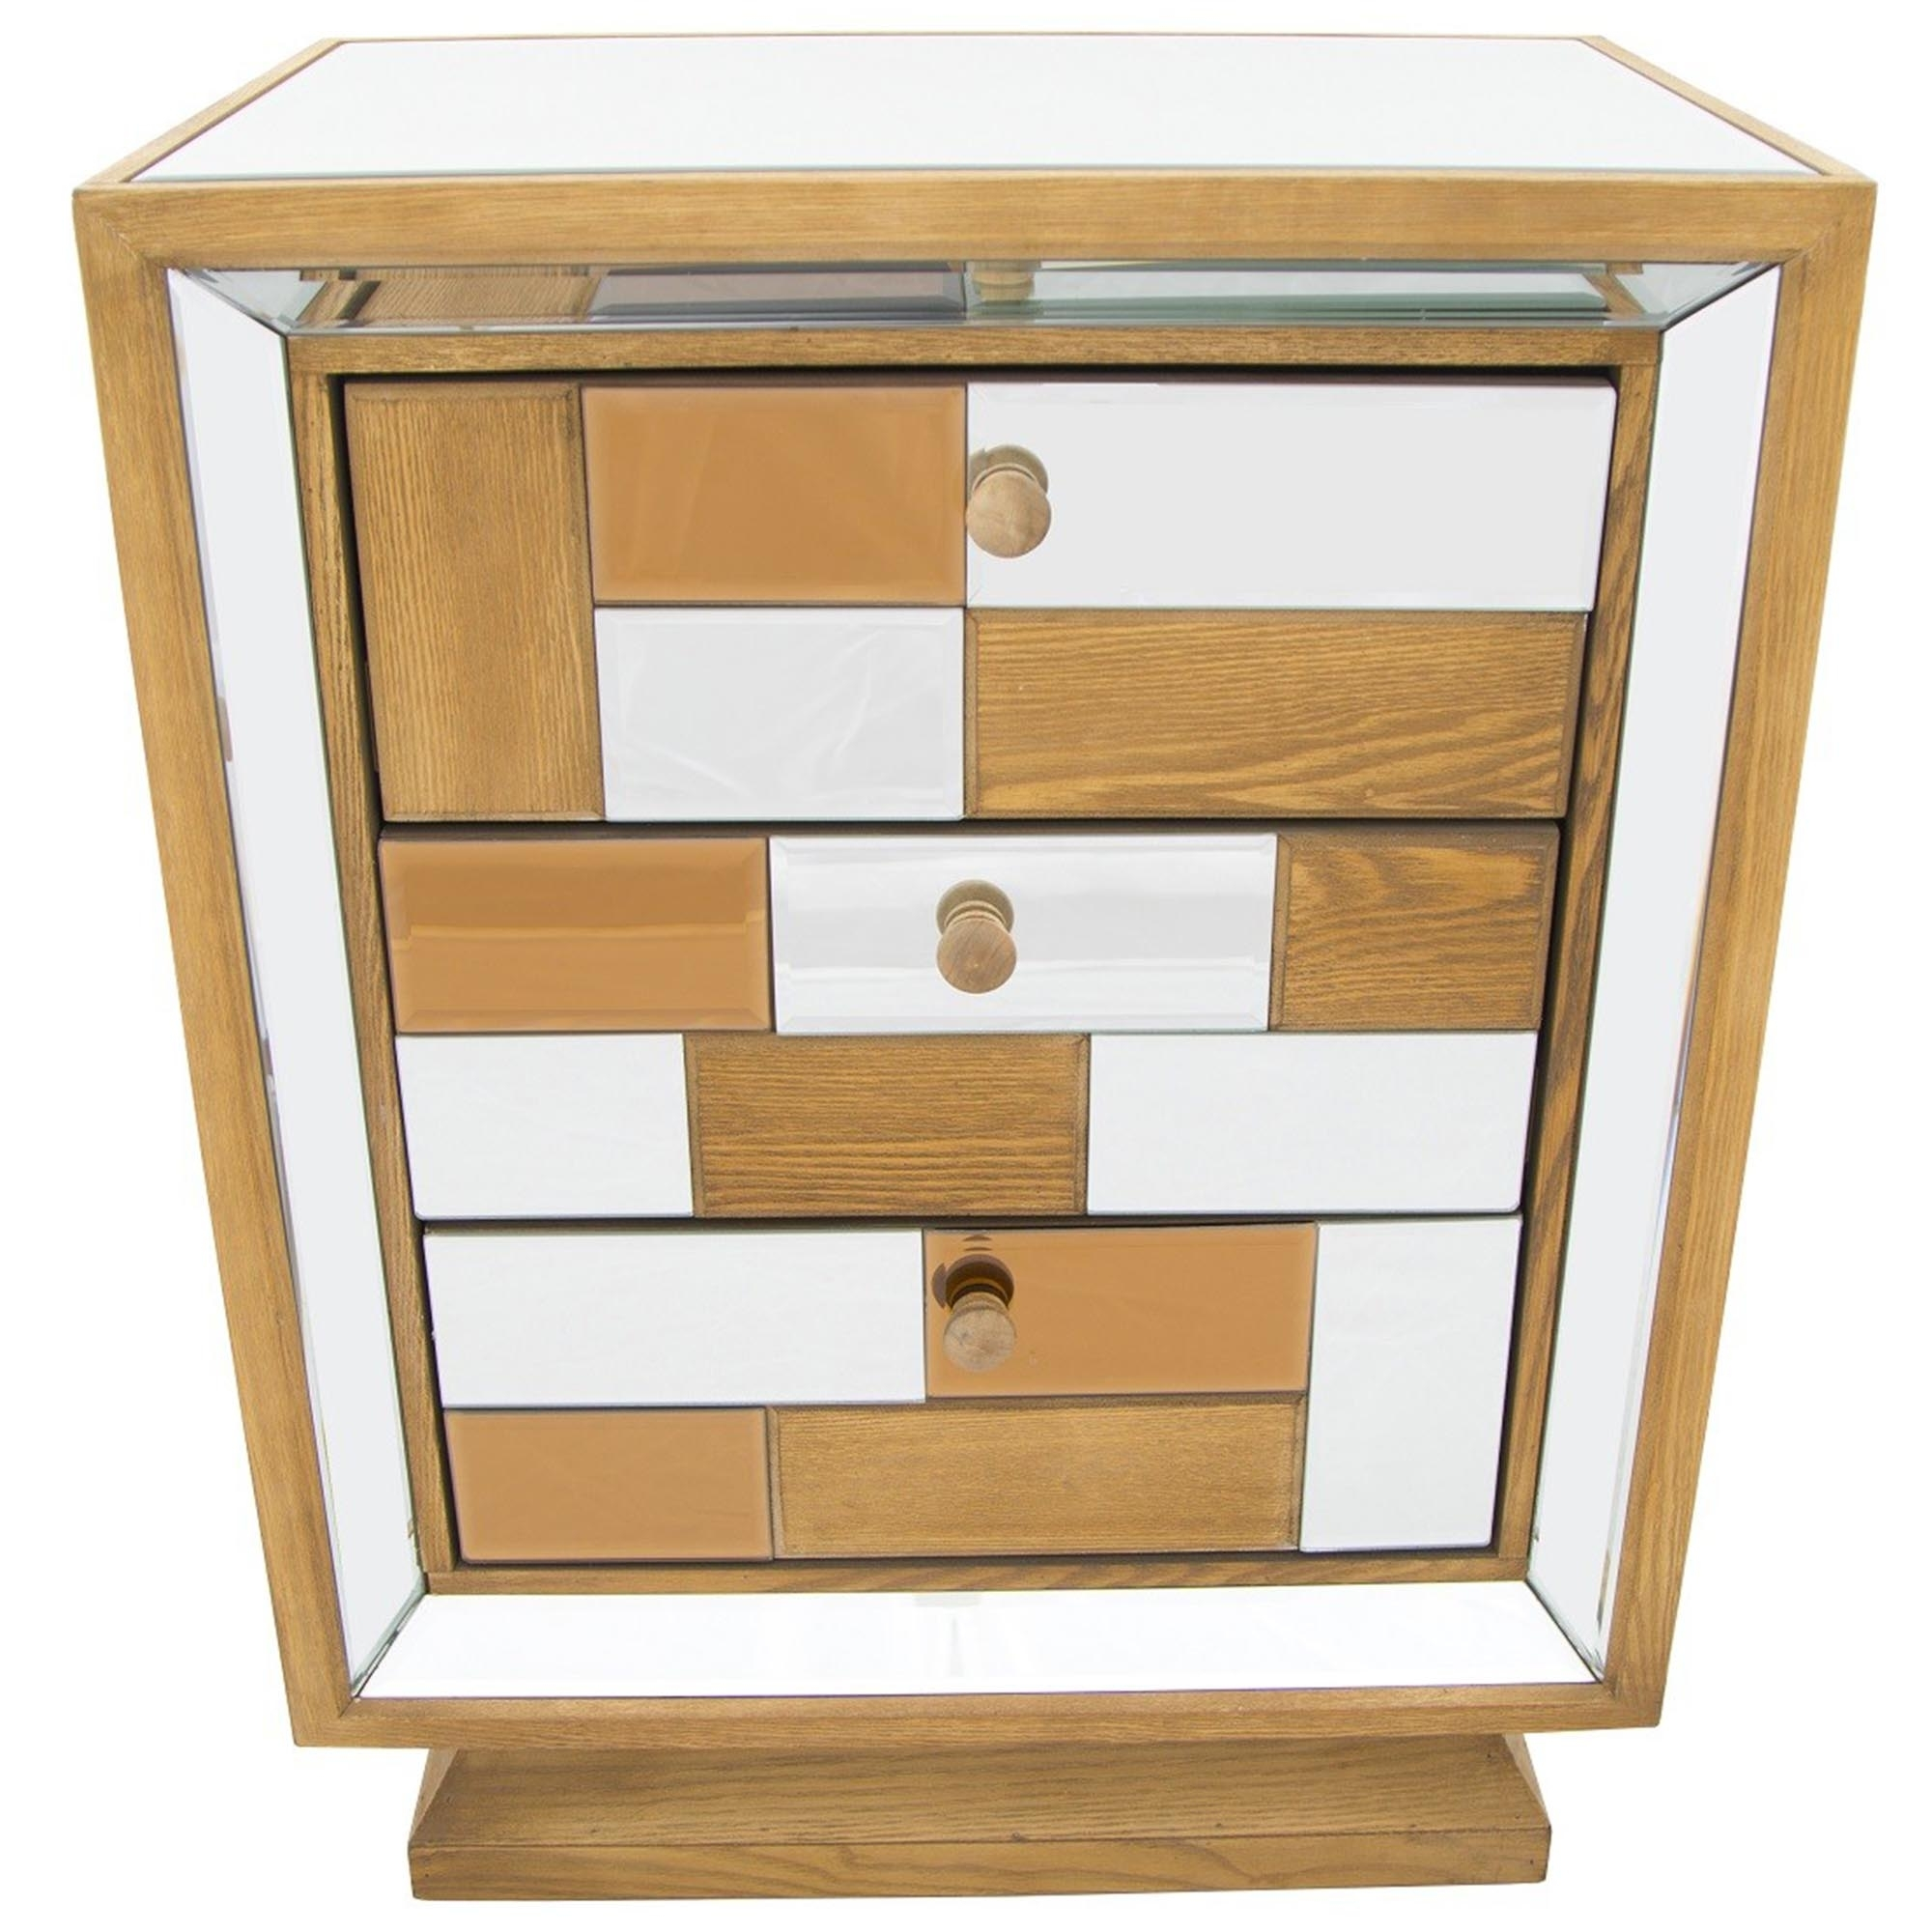 Bronze mirrored bedside cabinet french furniture from for Mirror bedside cabinets